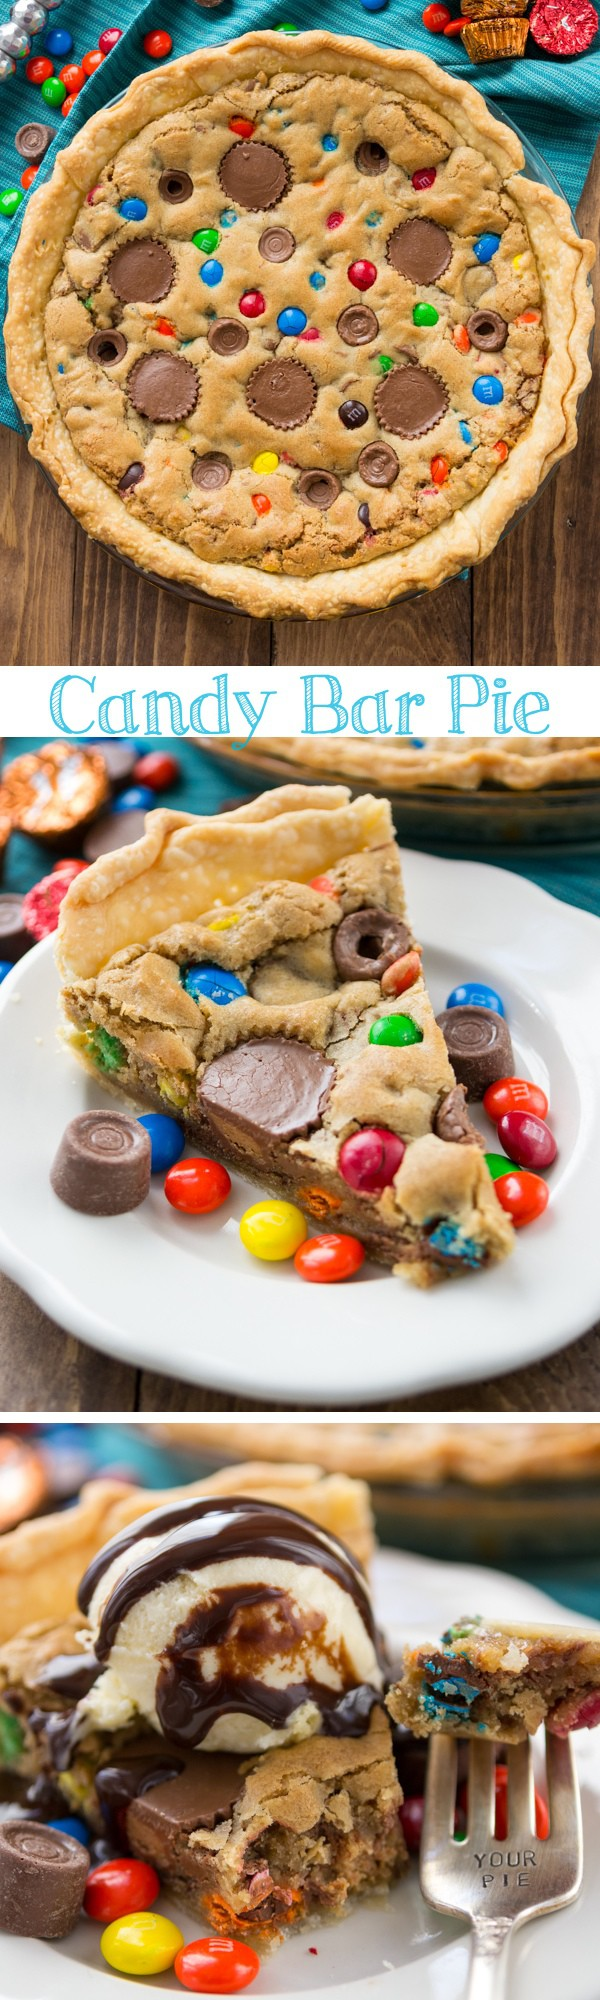 Candy Bar Pie - you must make this blondie pie! It's filled with peanut butter cups, Rolos, and M&Ms! Collage photo